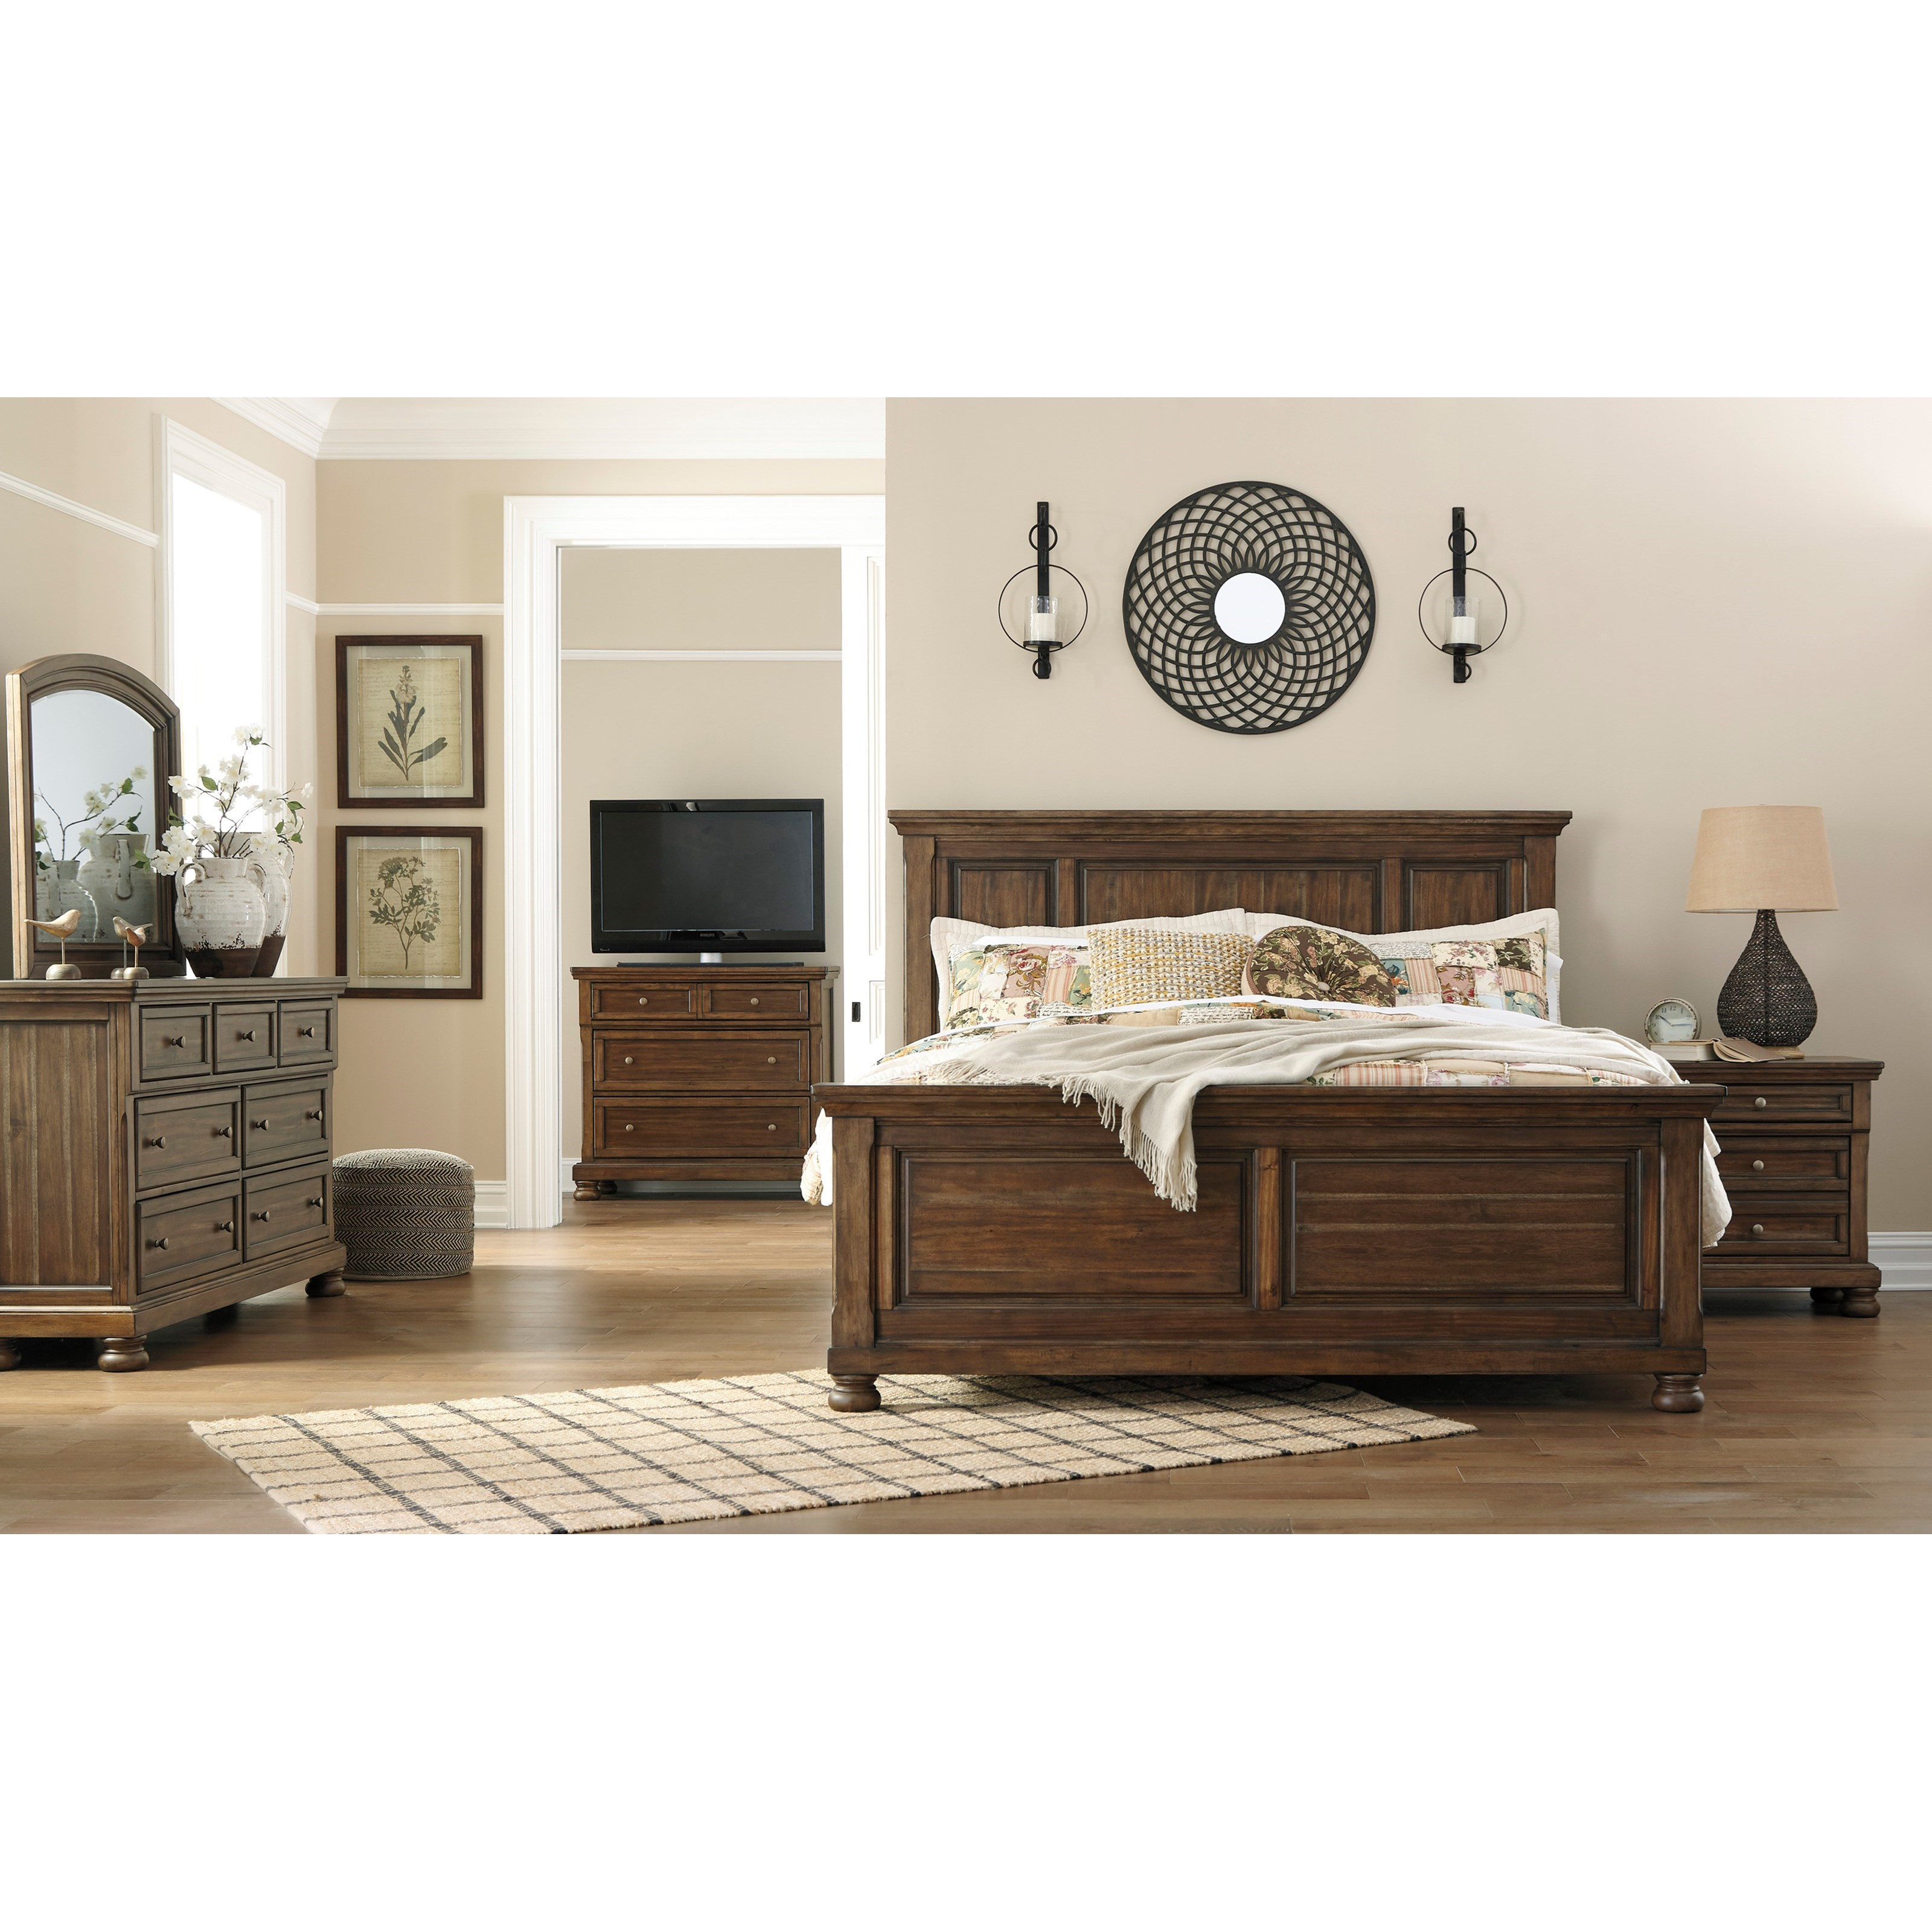 Signature Design By Ashley Flynnter Queen Panel Bed In